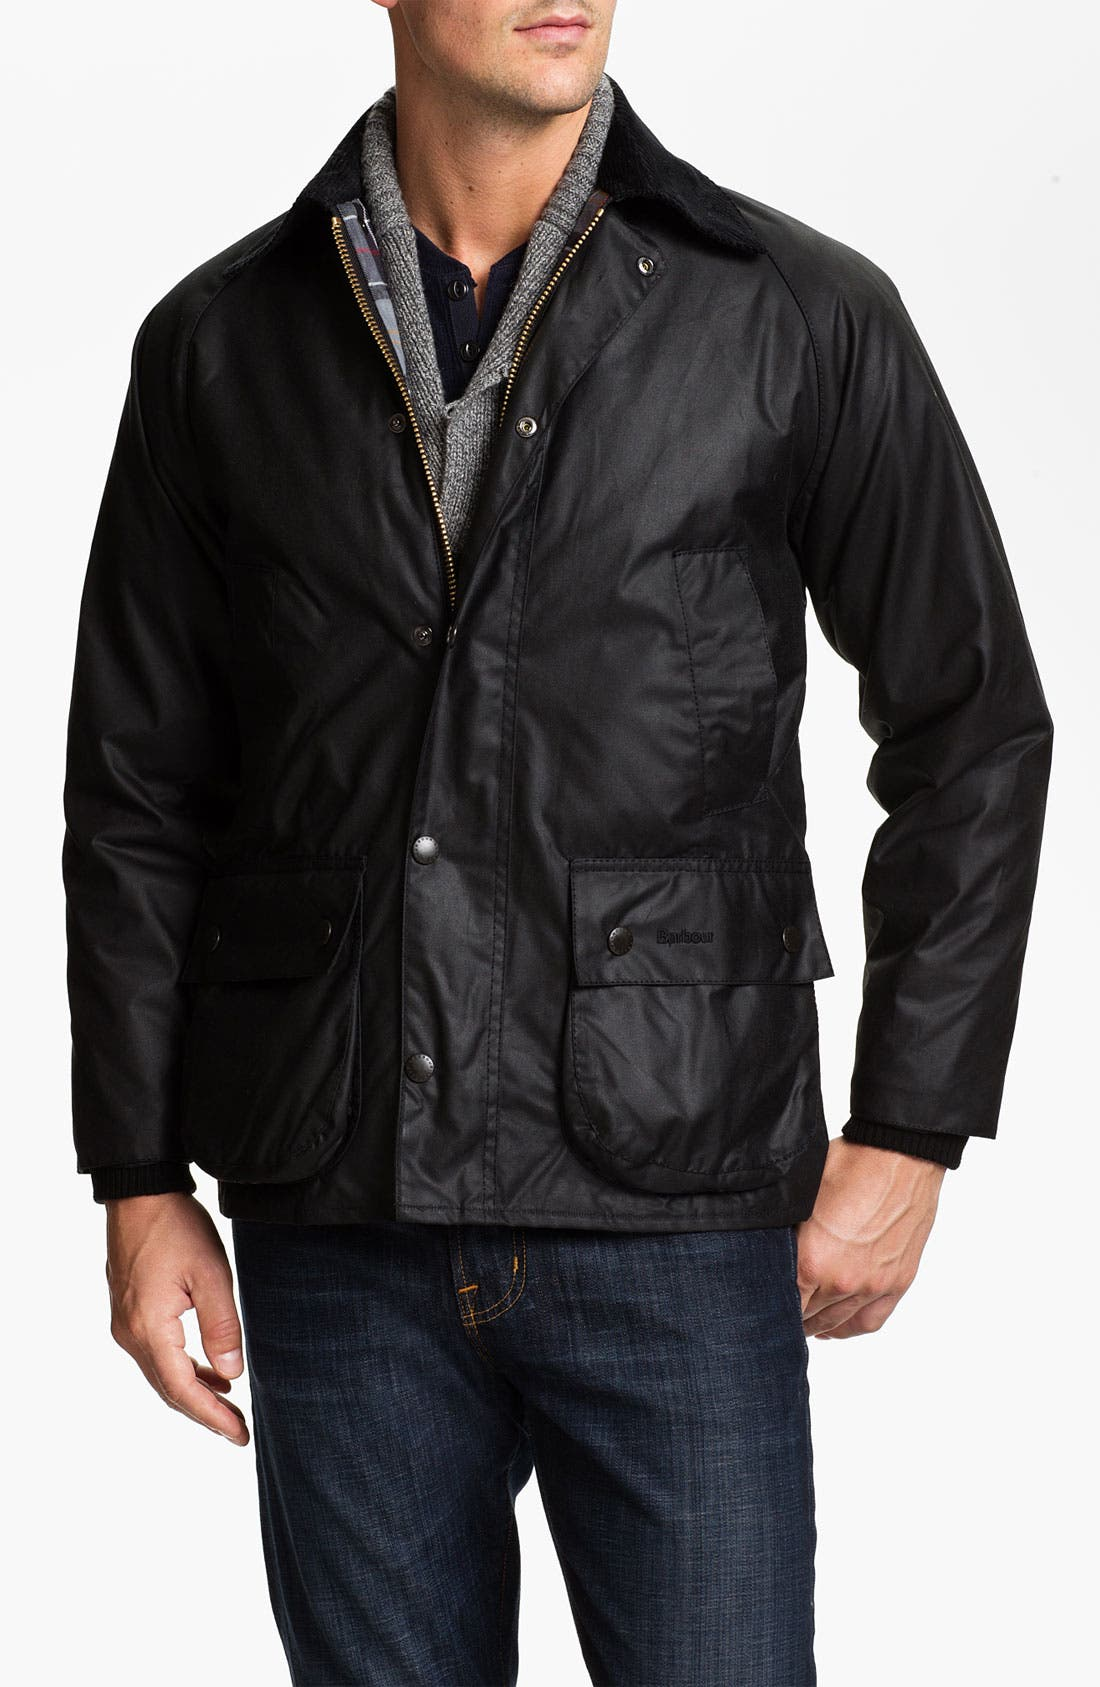 Alternate Image 1 Selected - Barbour 'Bedale' Regular Fit Waxed Cotton Jacket